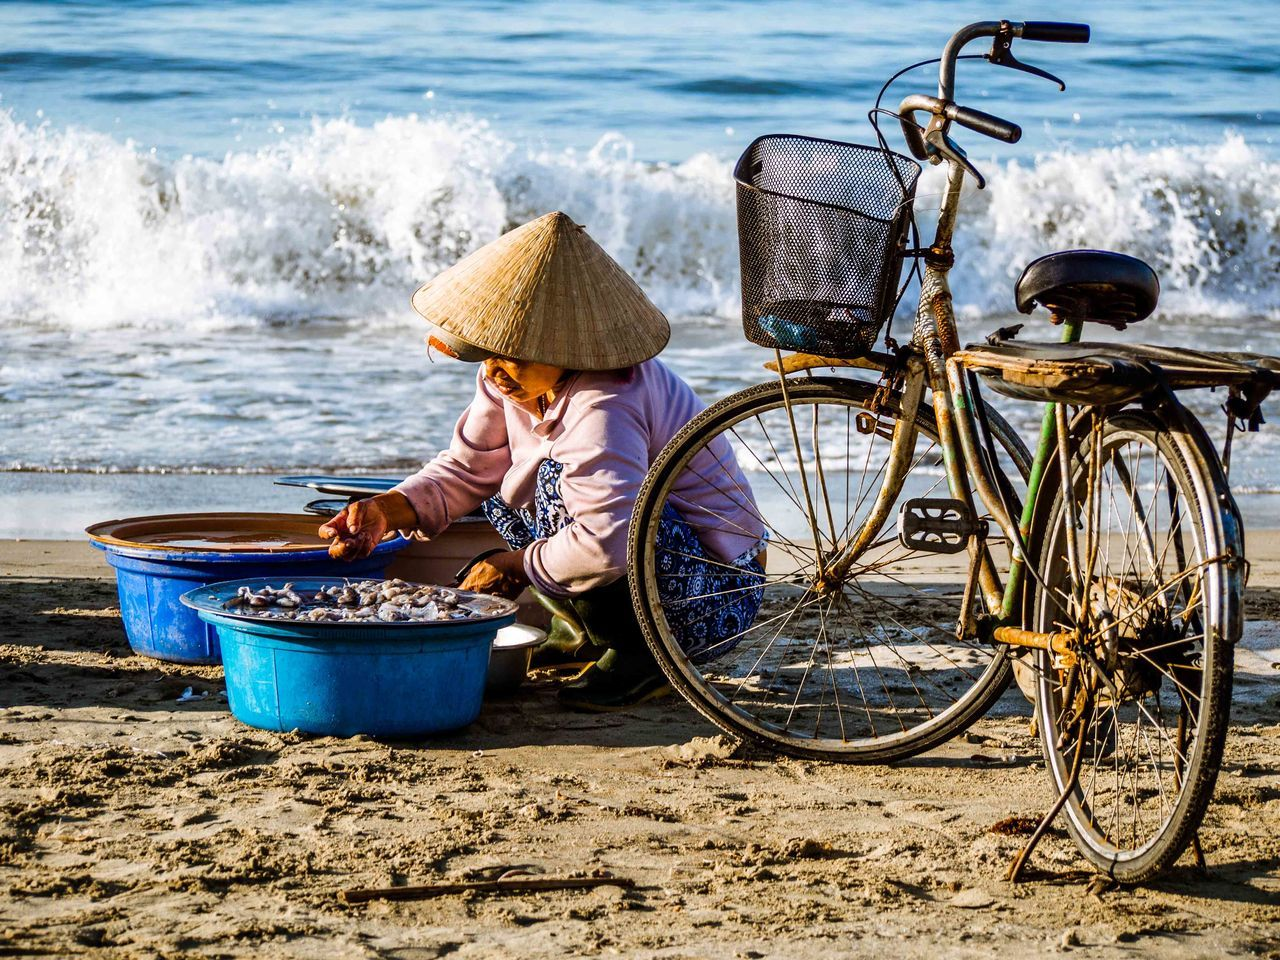 Beautiful stock photos of fisch, sea, one person, bicycle, mode of transport